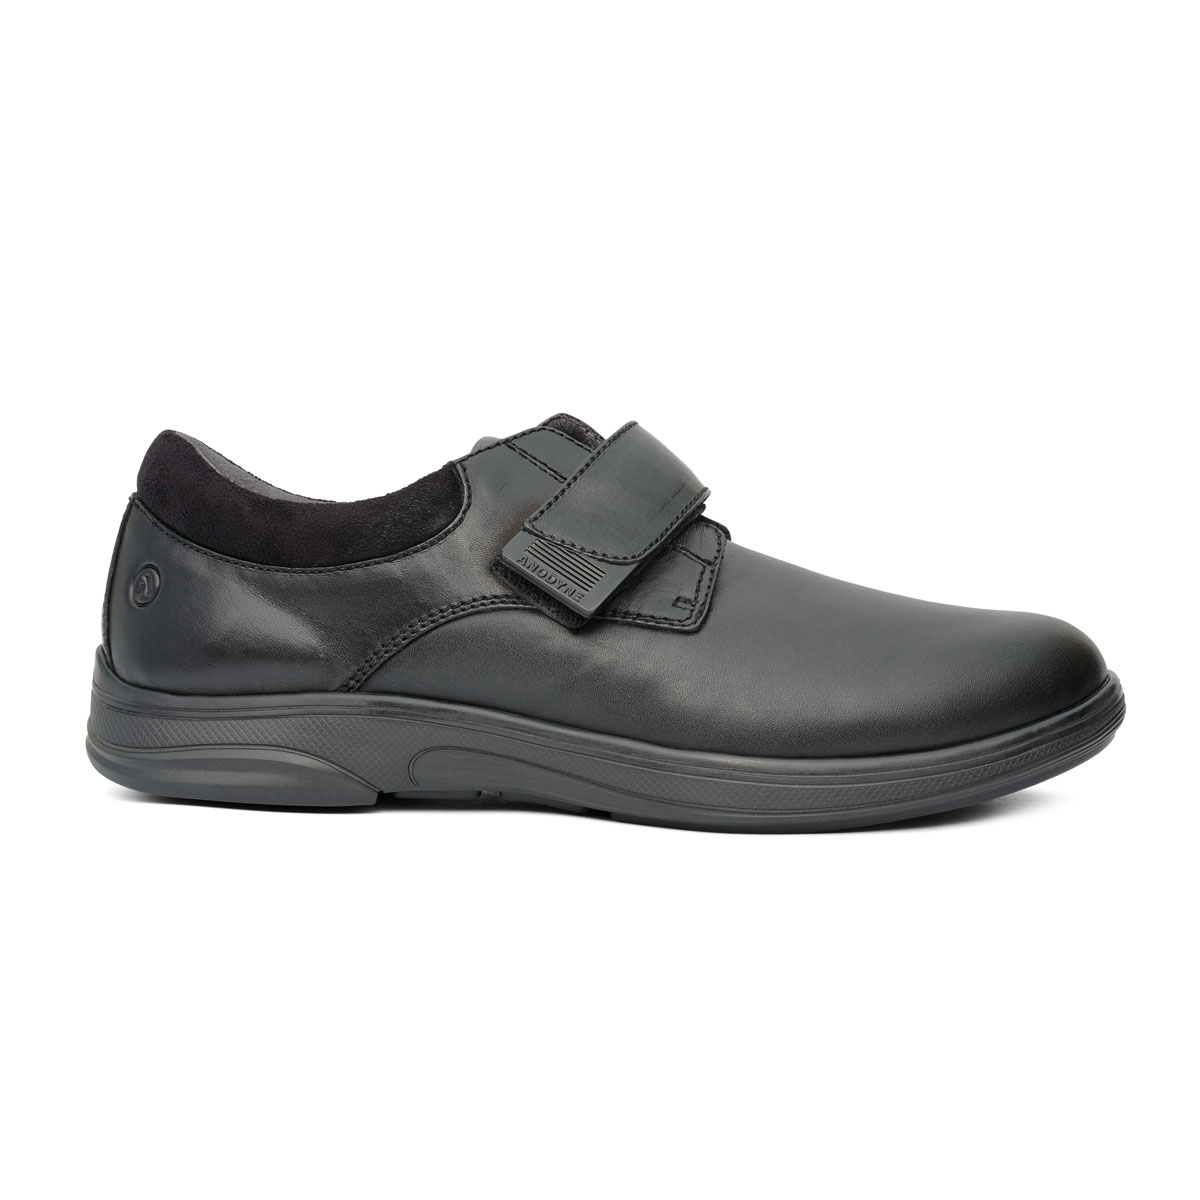 Anodyne Men's Casual Comfort Stretch. Shiny black casual loafer with one velcro strap.